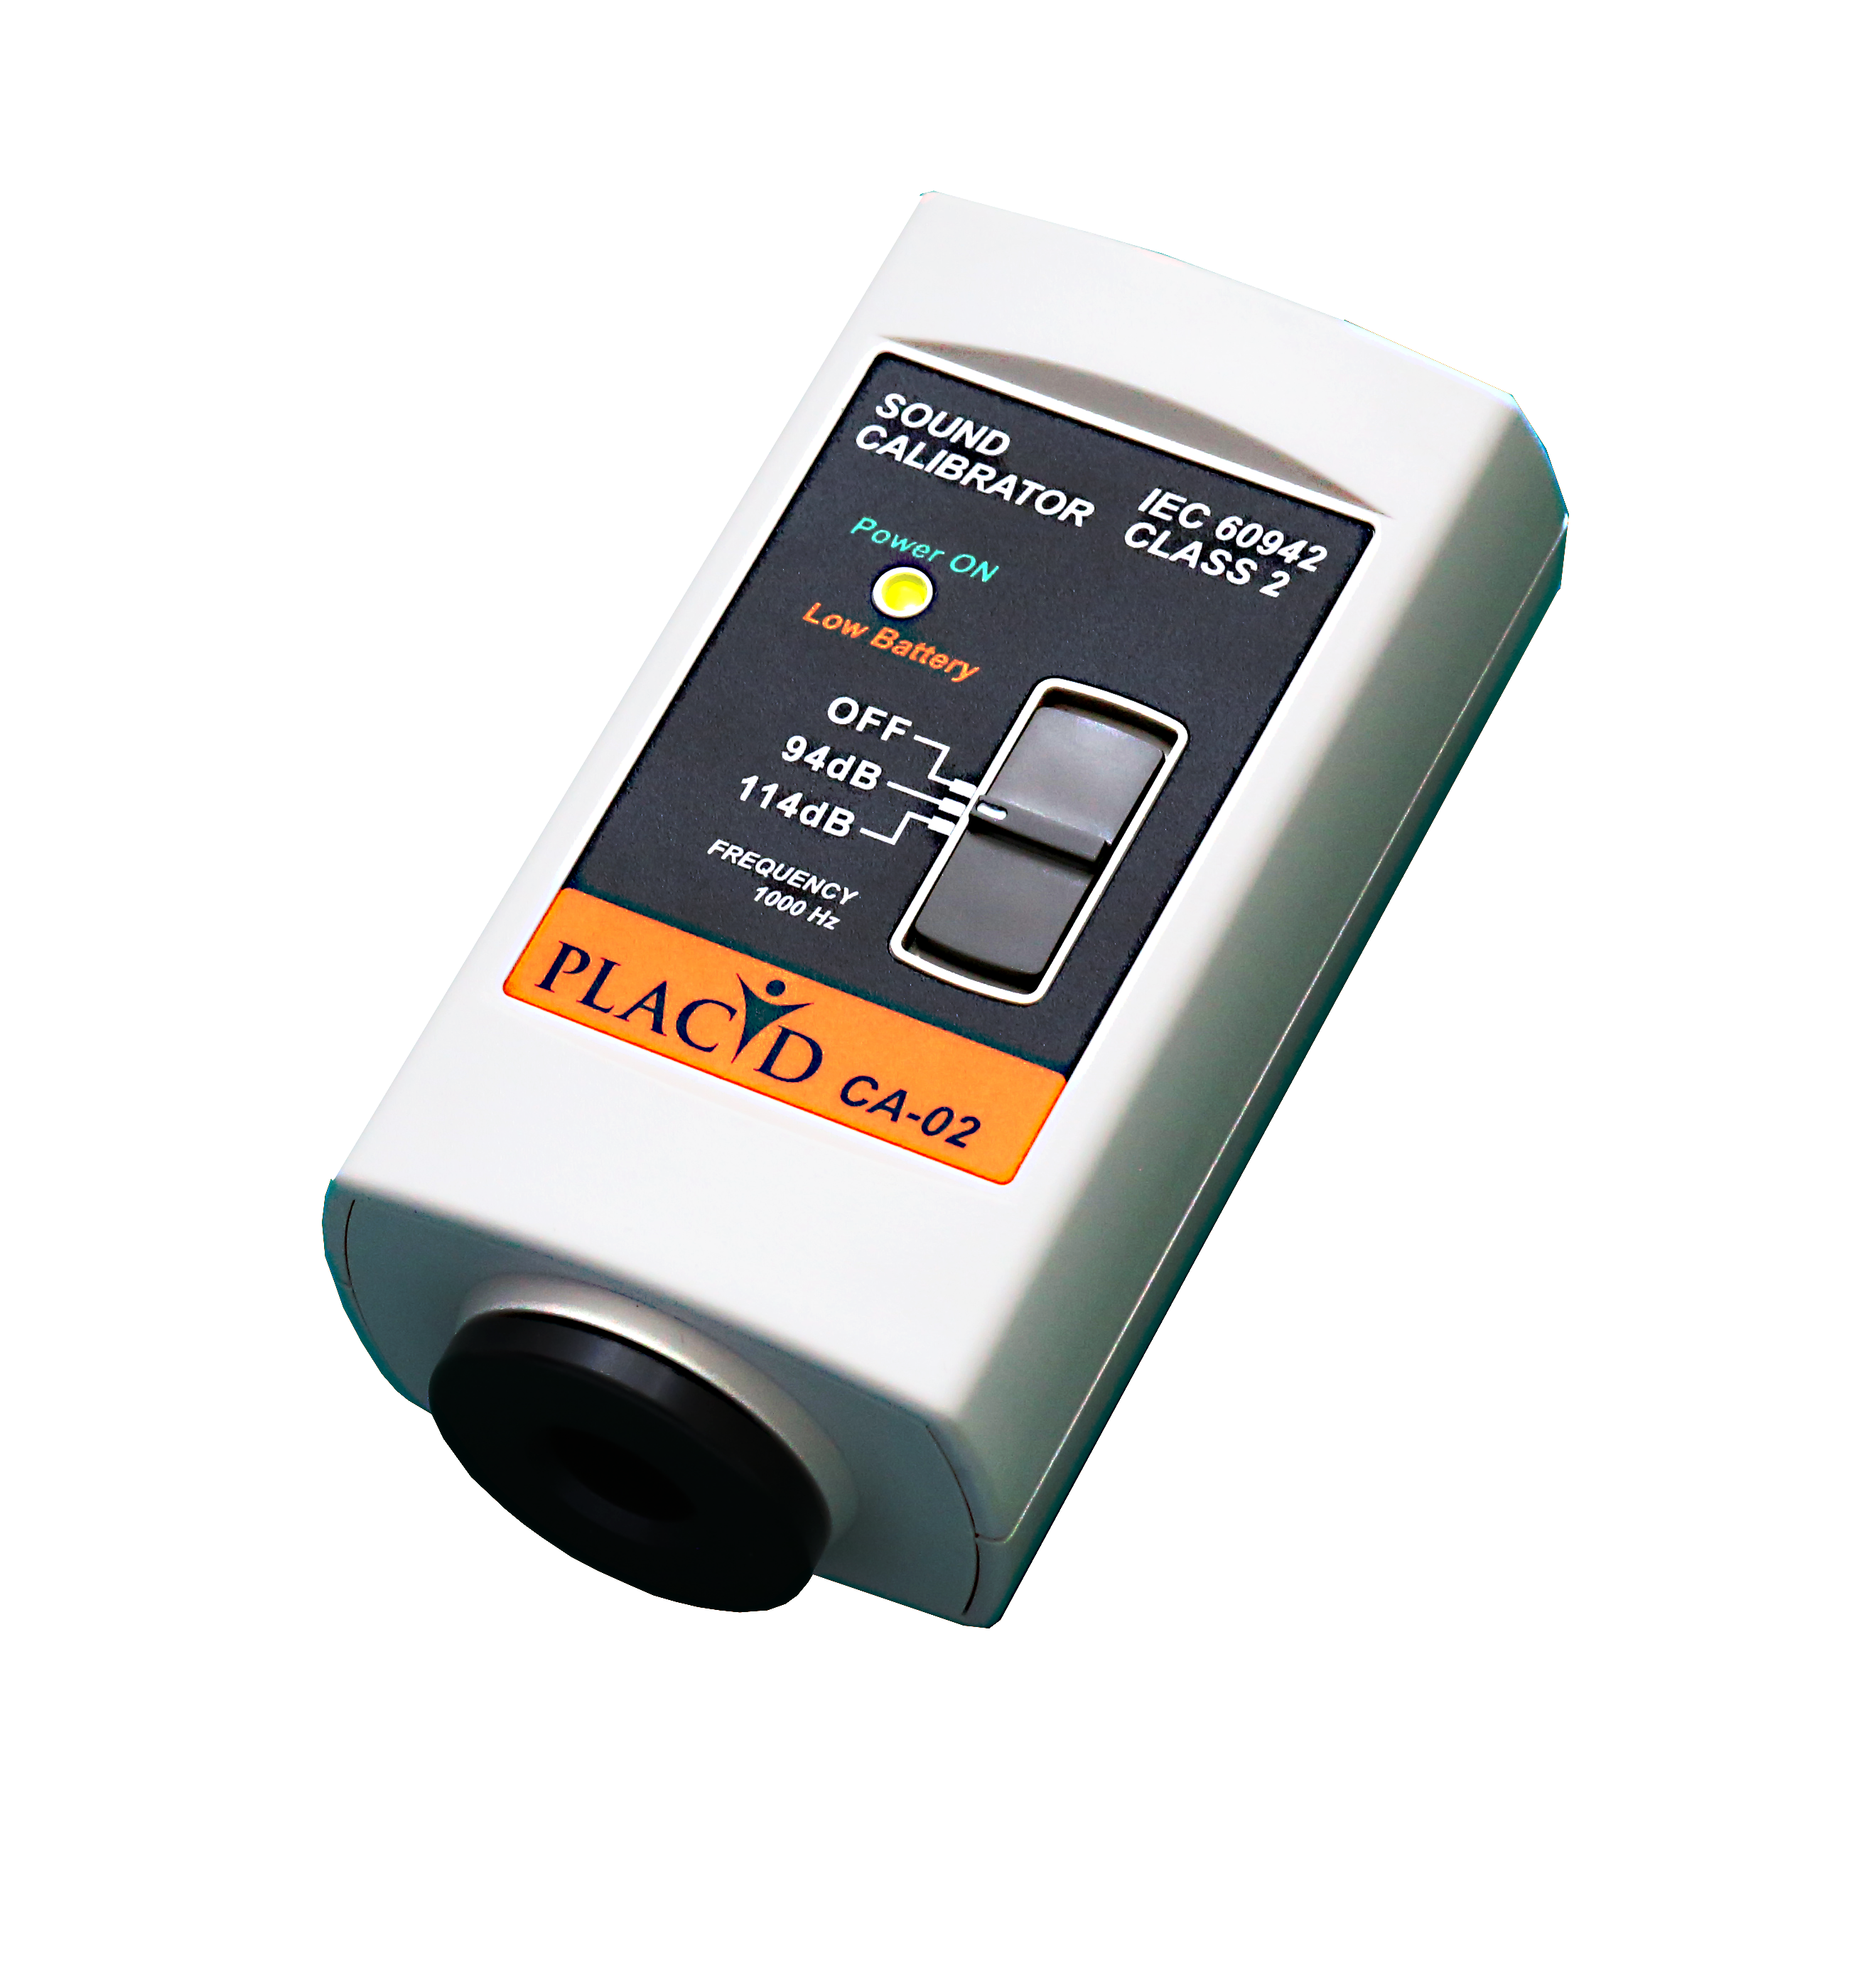 PLACID CA-02 Calibrator for sound level meter